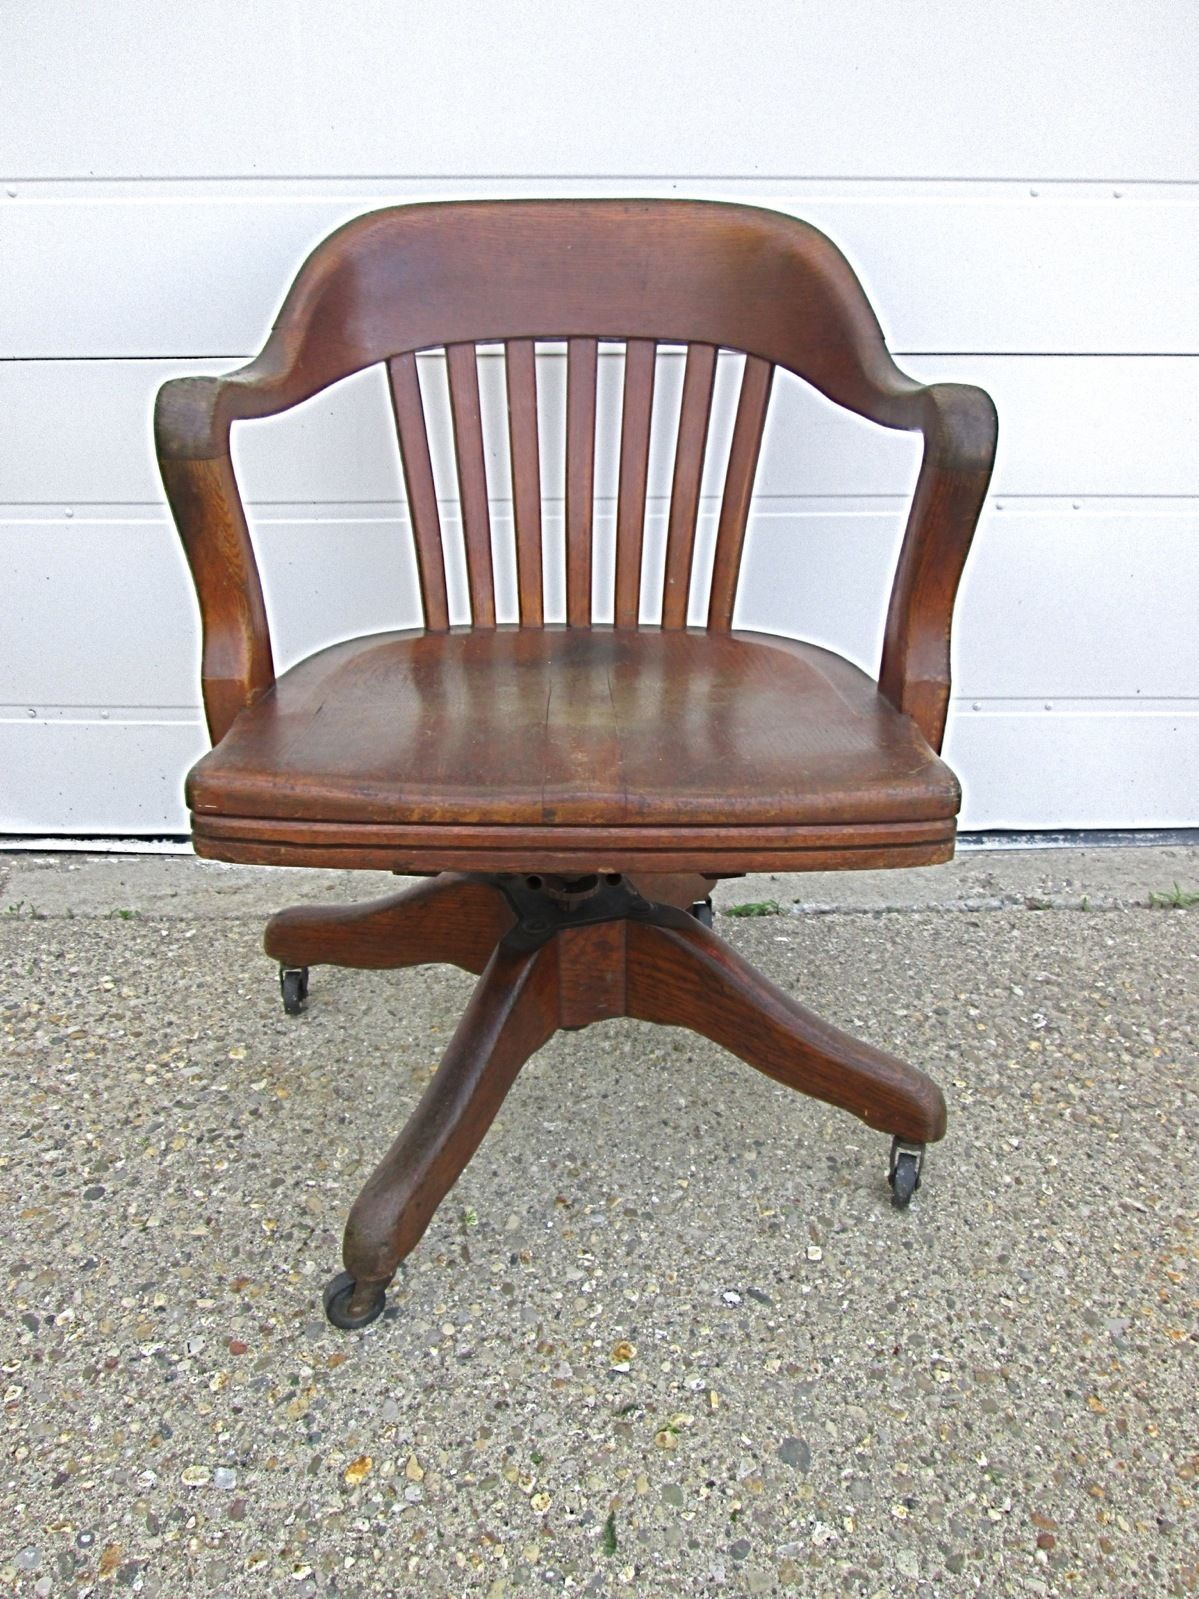 Wood Bankers Chair Antique Vtg Marble Shattuck Wood Oak Swivel Office Desk